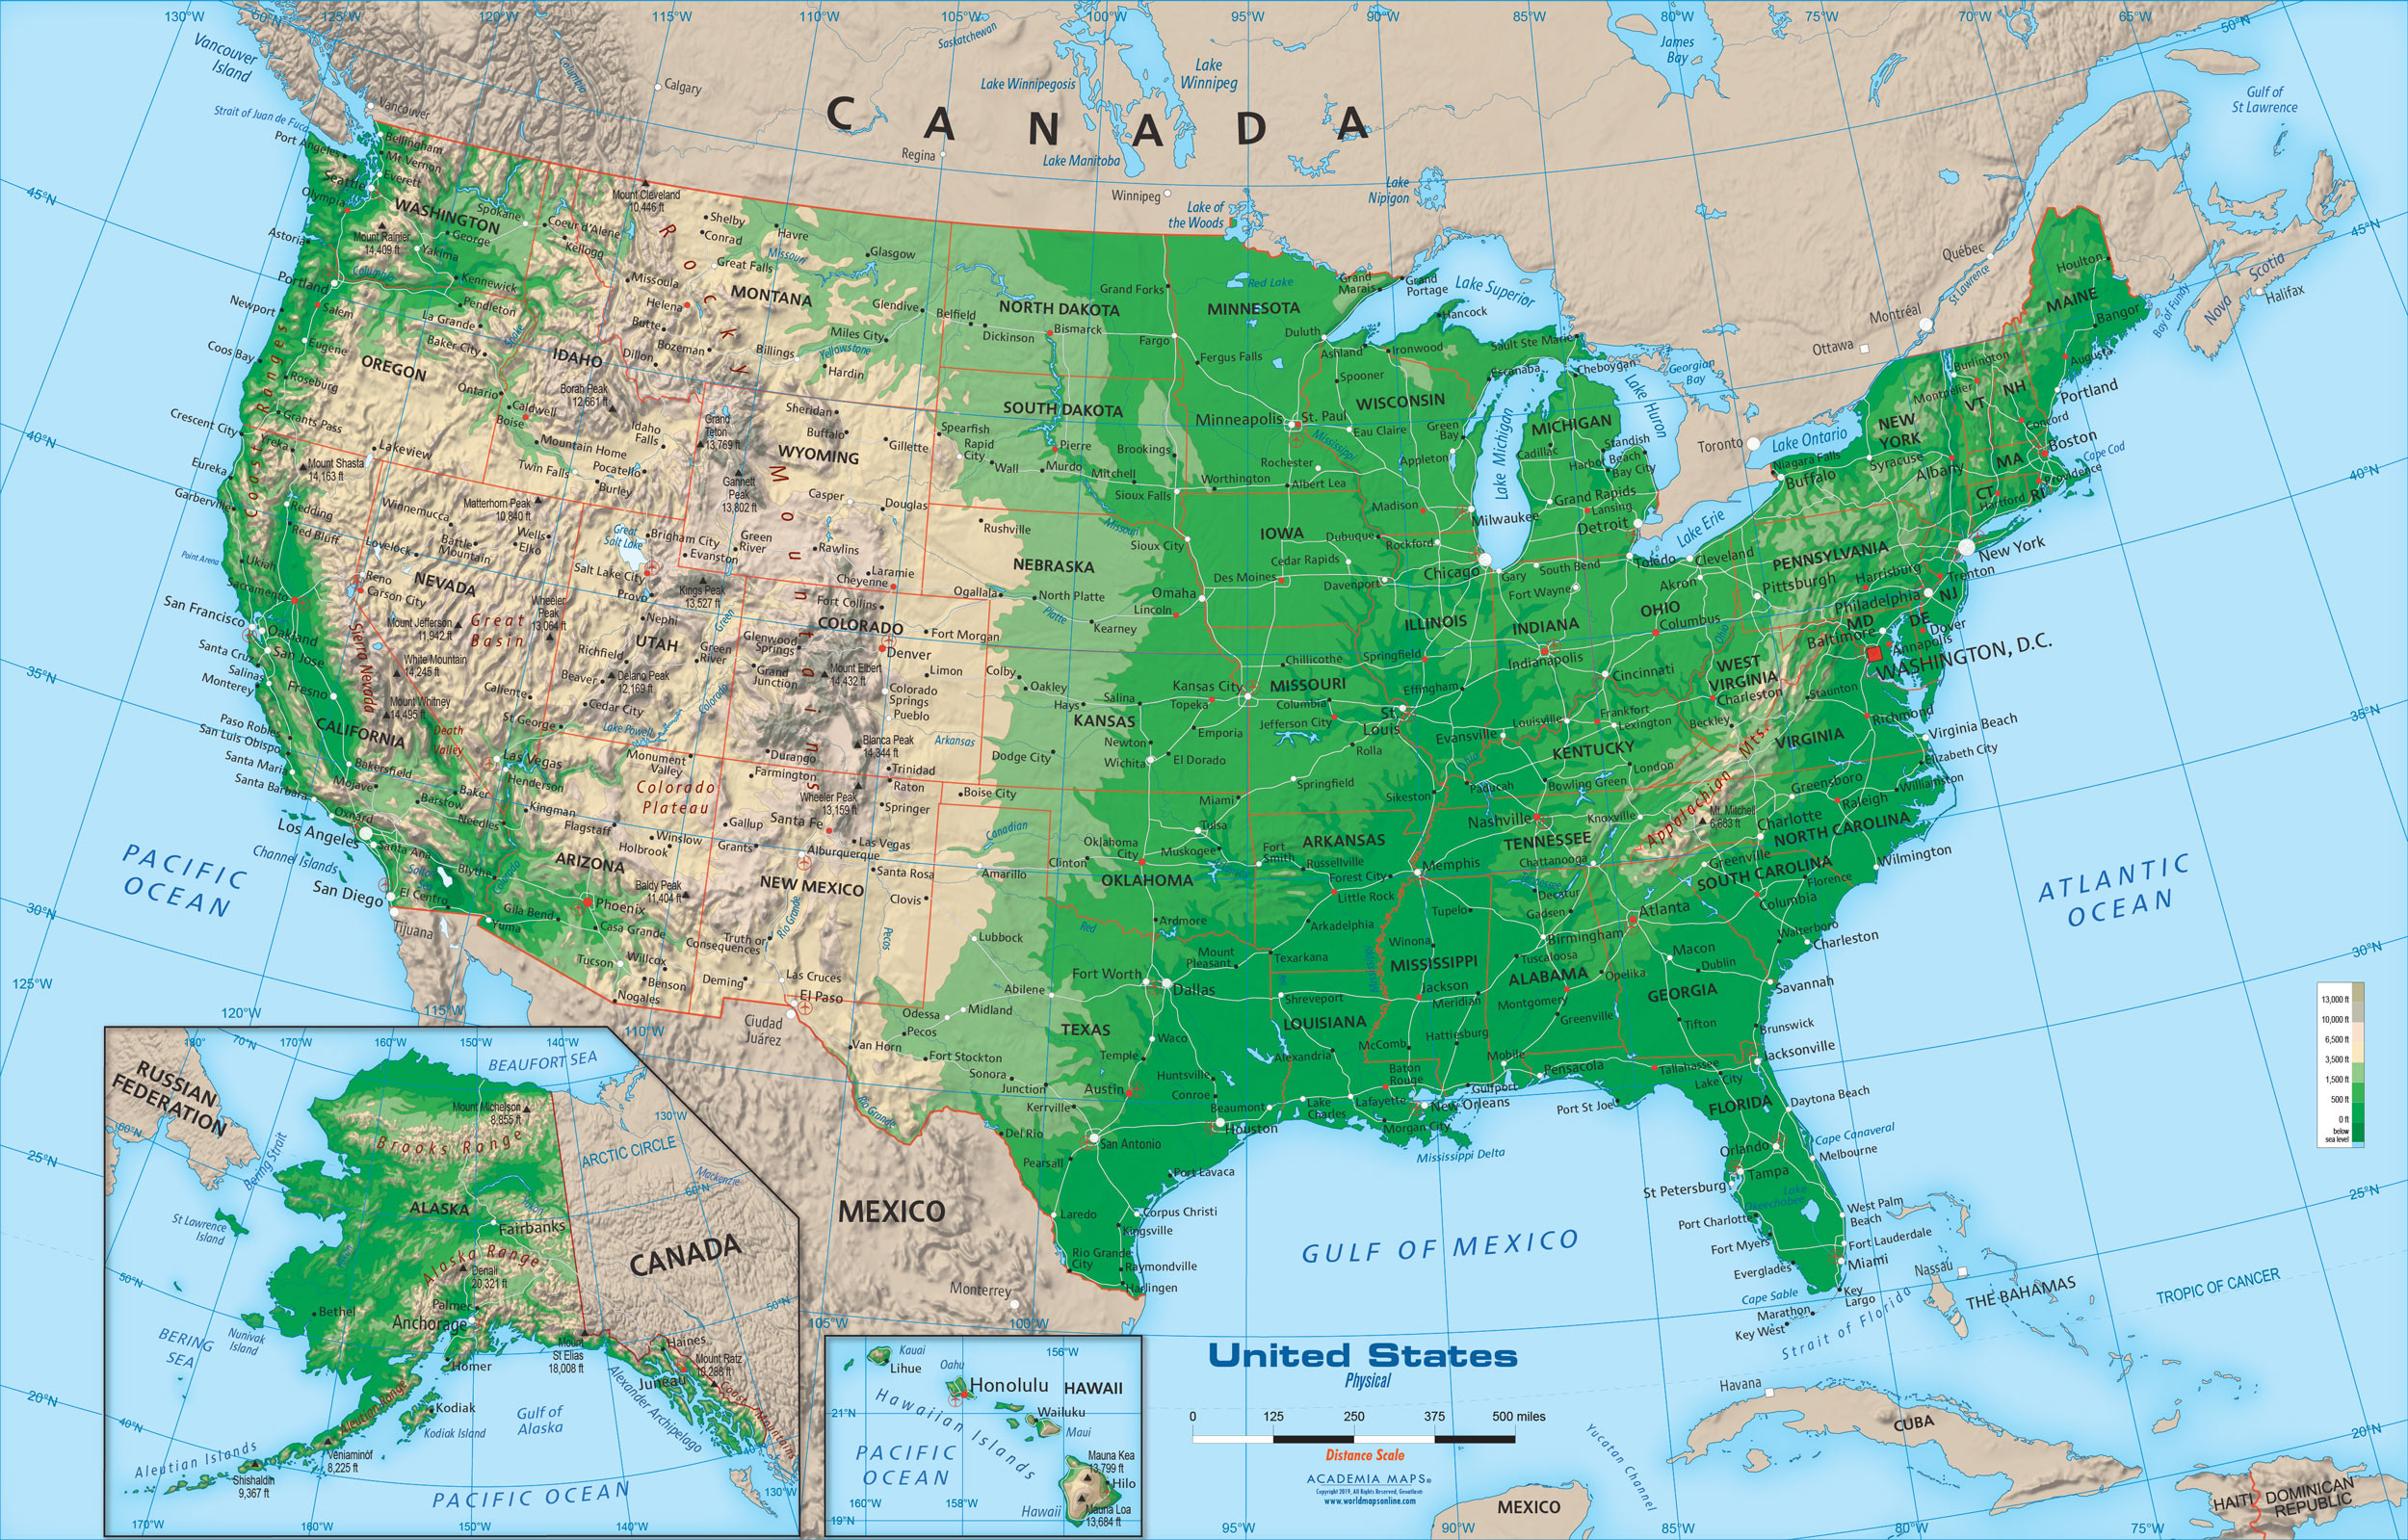 Whether you're hitting the open road or just letting your imagination wander, a map is essential to your sense of direction. United States Physical Map Wall Mural From Academia